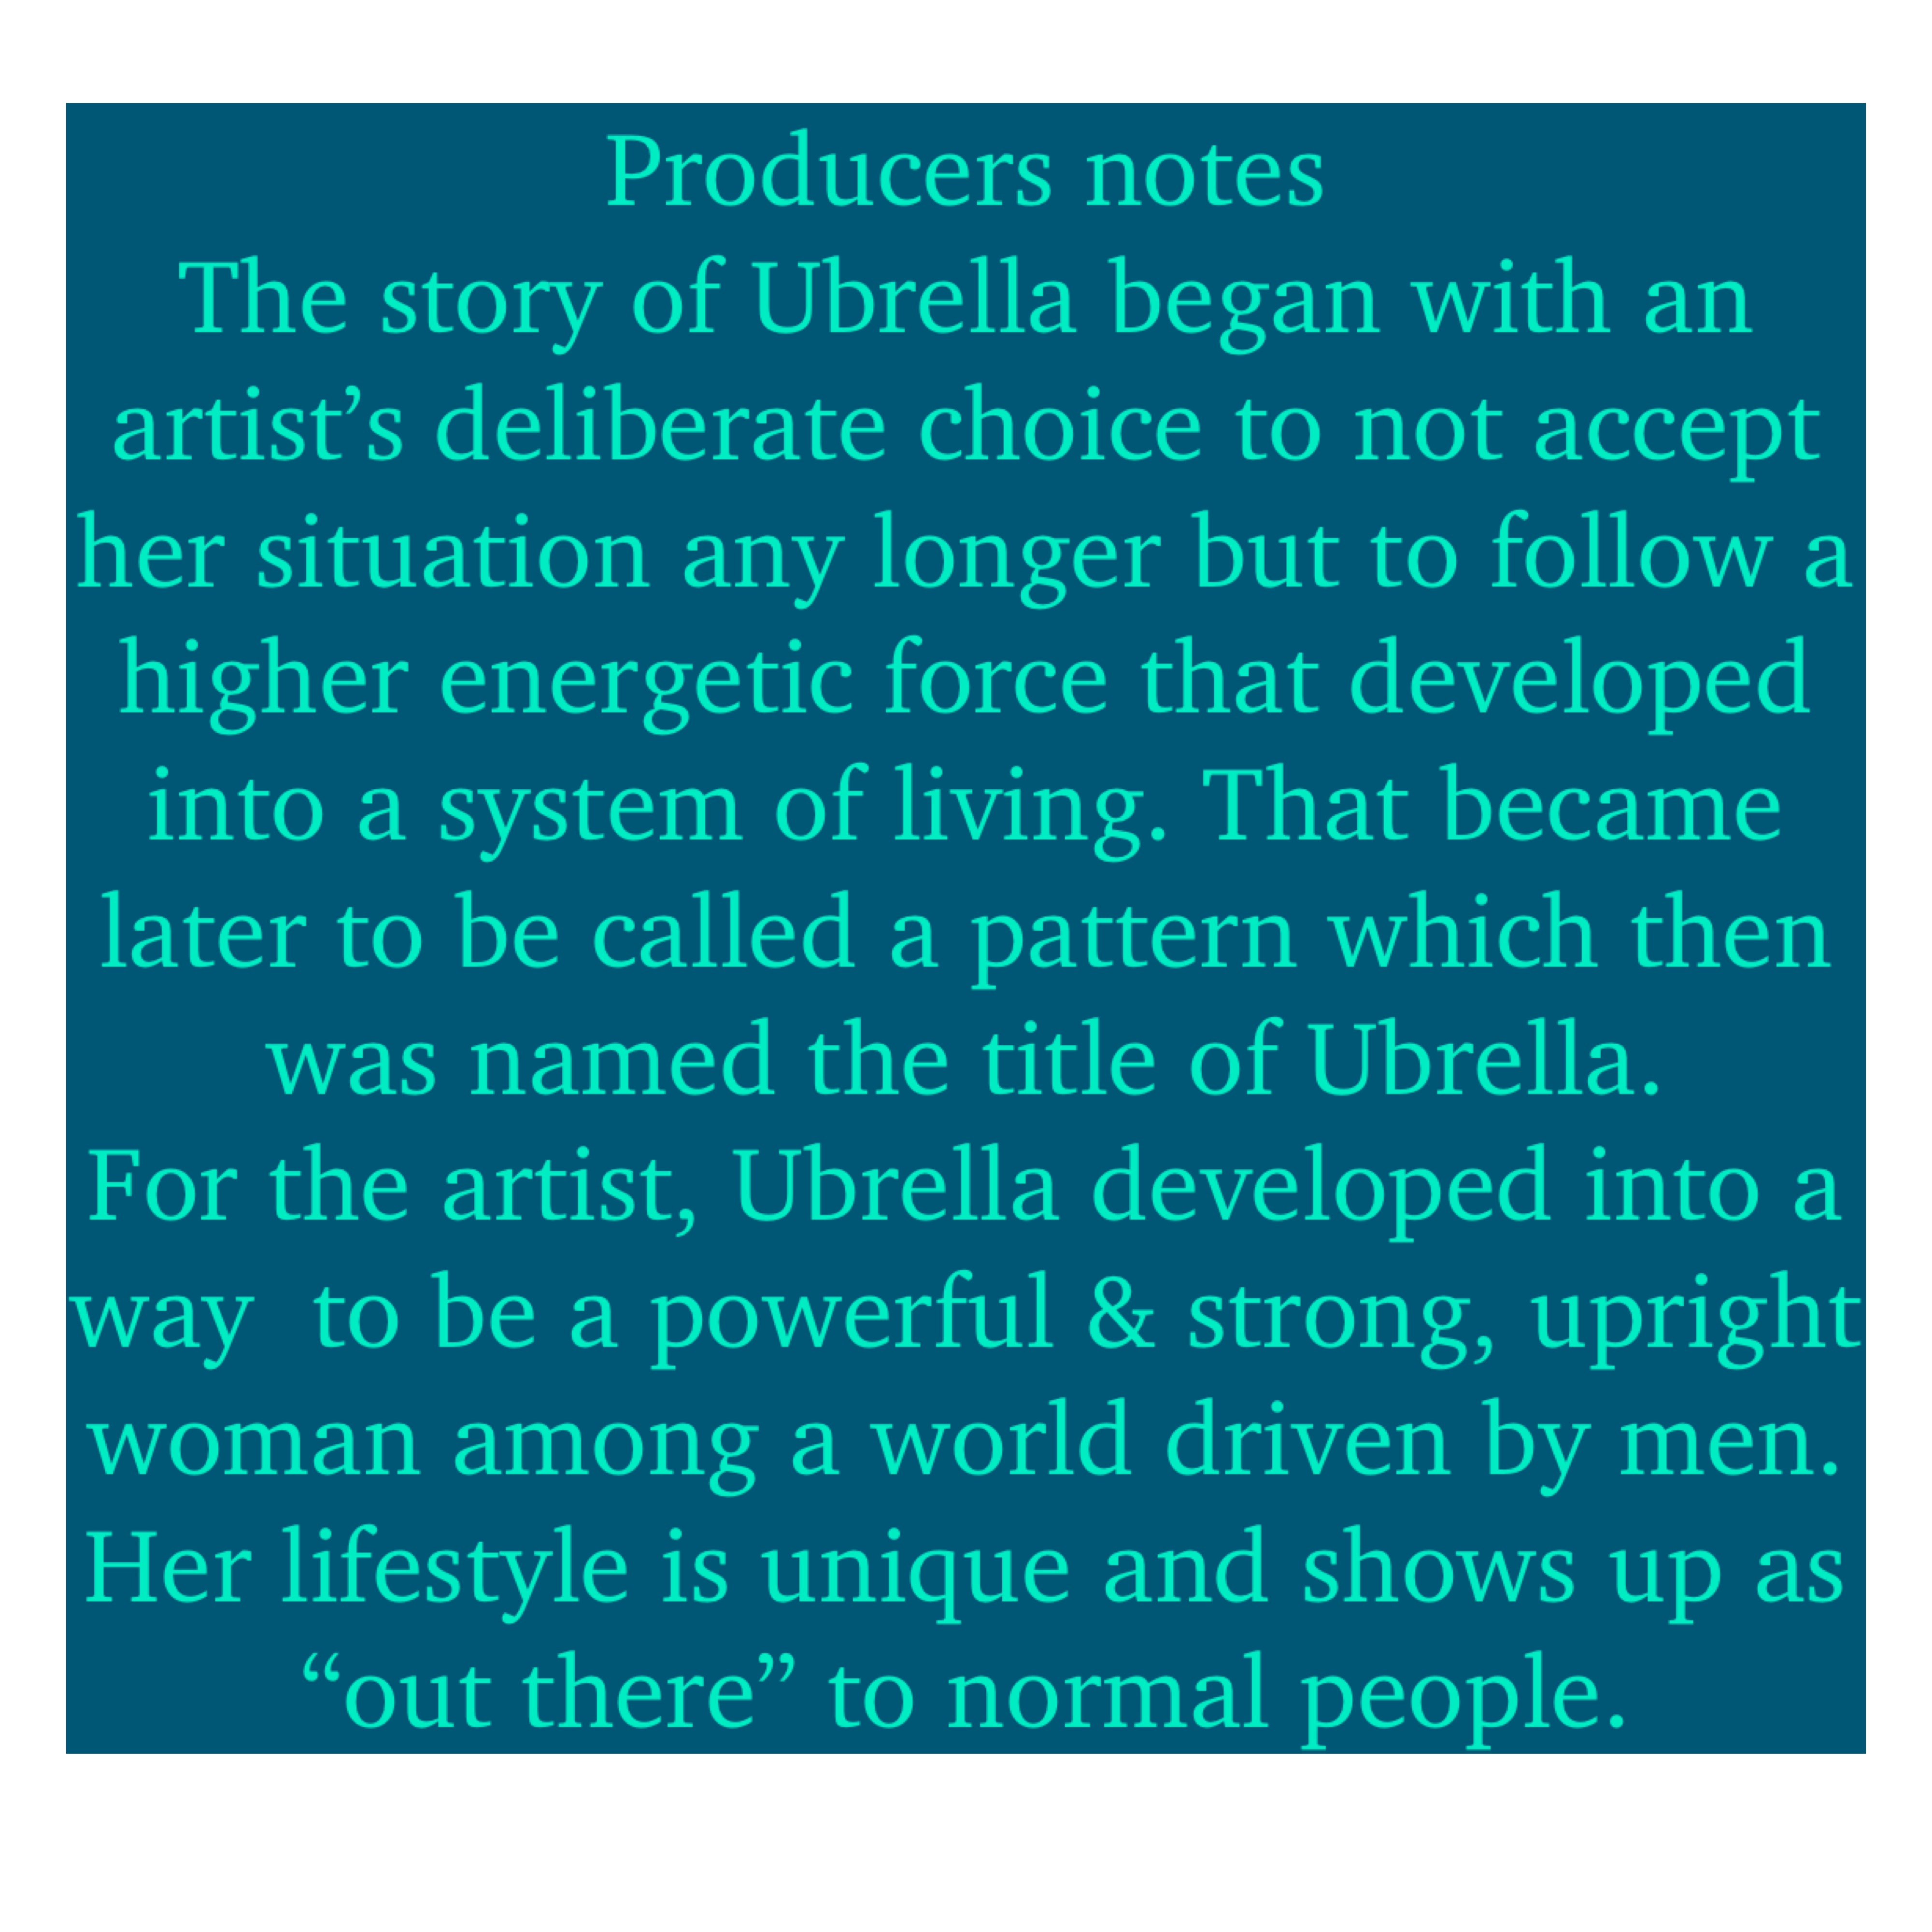 Producer's Notes